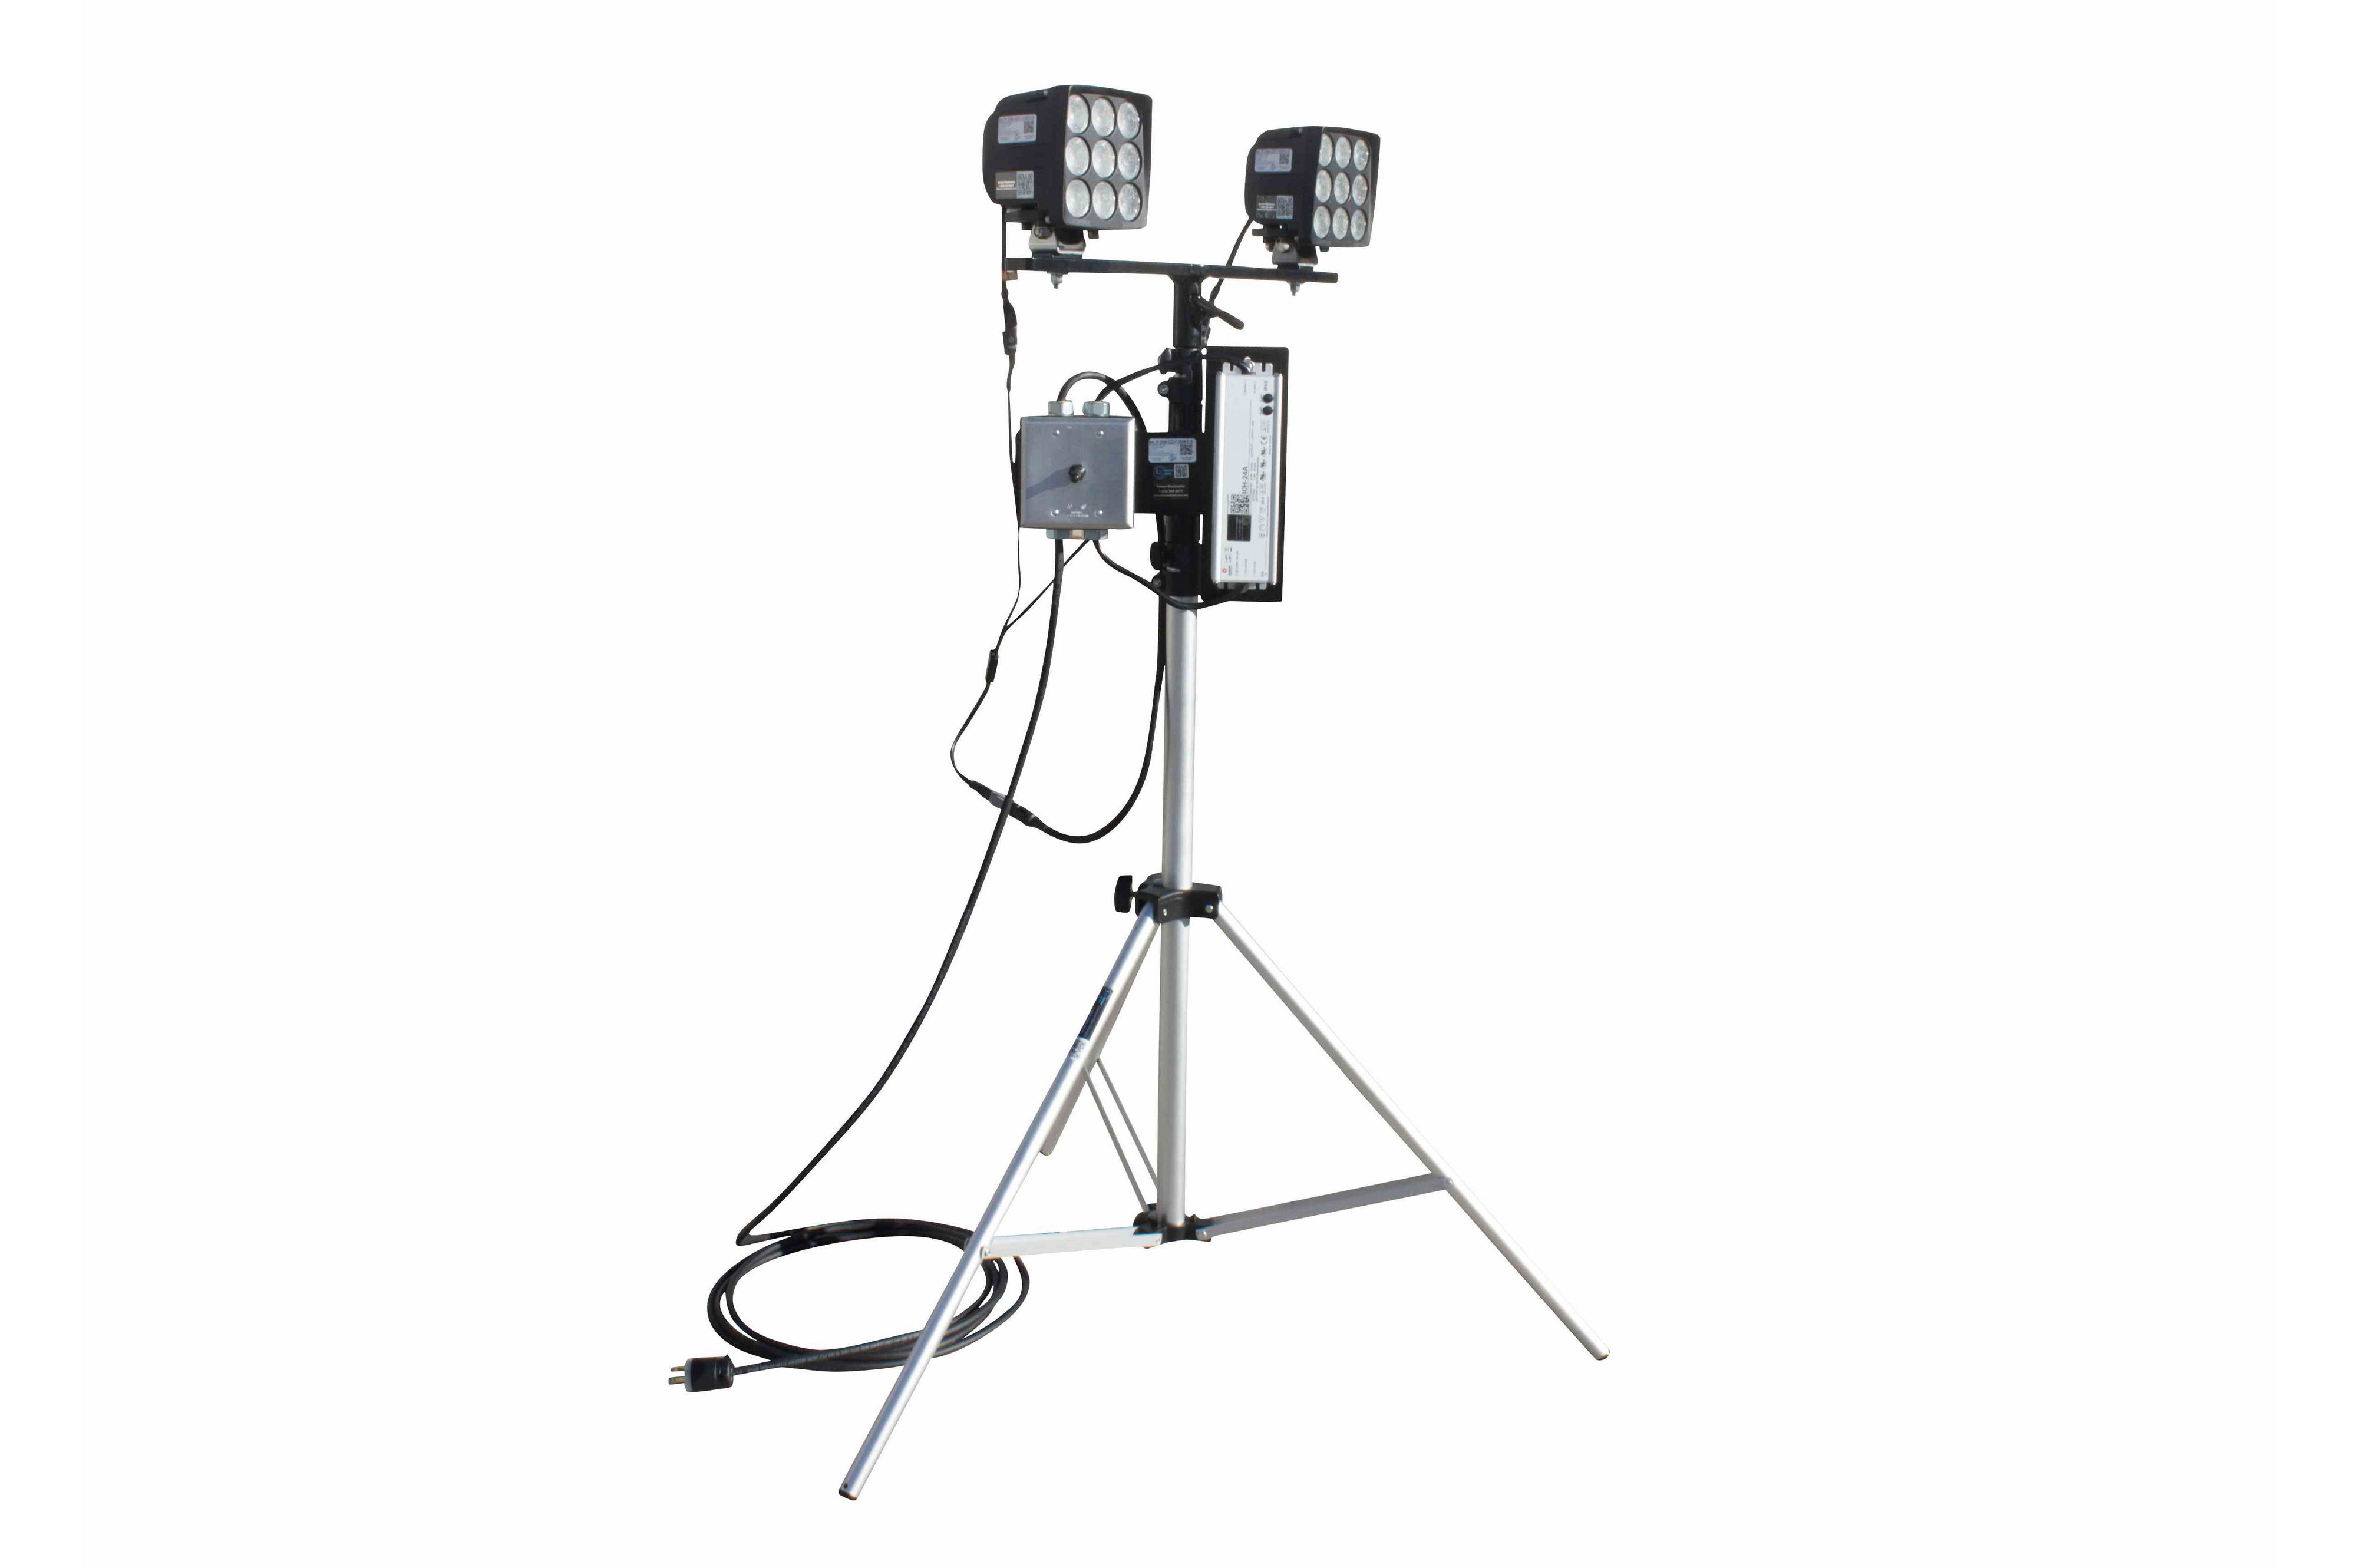 180 Watt Dual Led Light On Telescoping Tripod